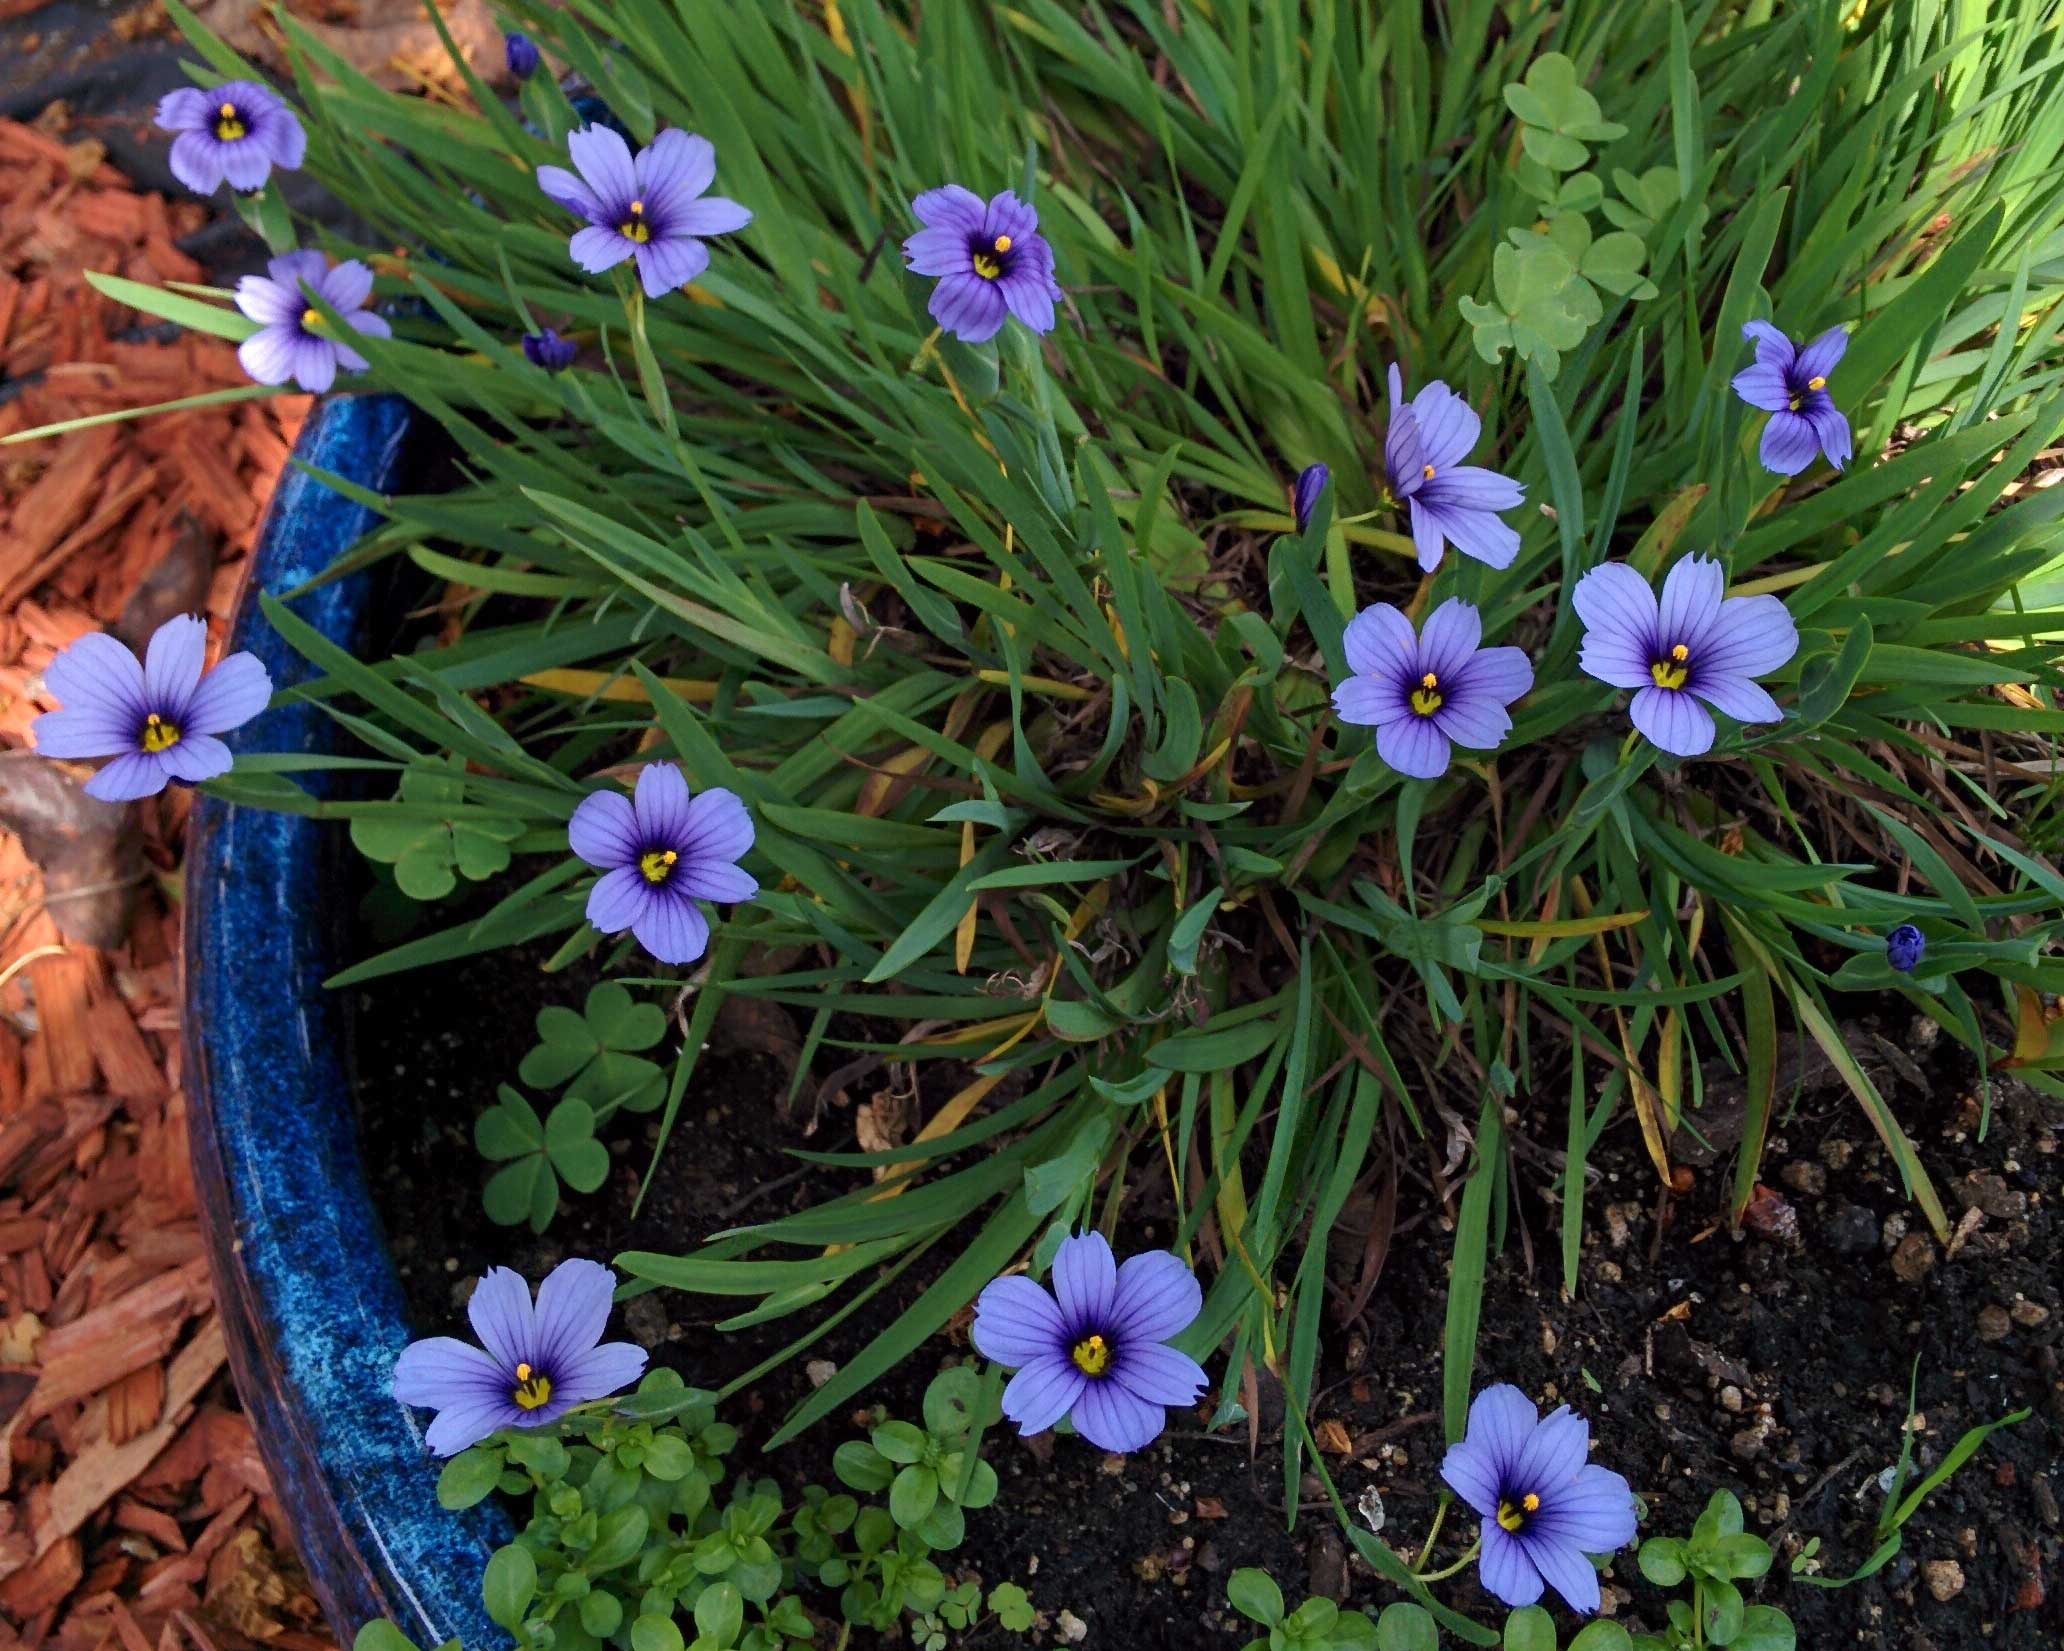 This sunnyvale garden april 2016 sunnyvale garden sisyrinchium angustifolium is noted for its violet blue flowers and branched flowering stems though their foliage is grass like the blue eyed grasses izmirmasajfo